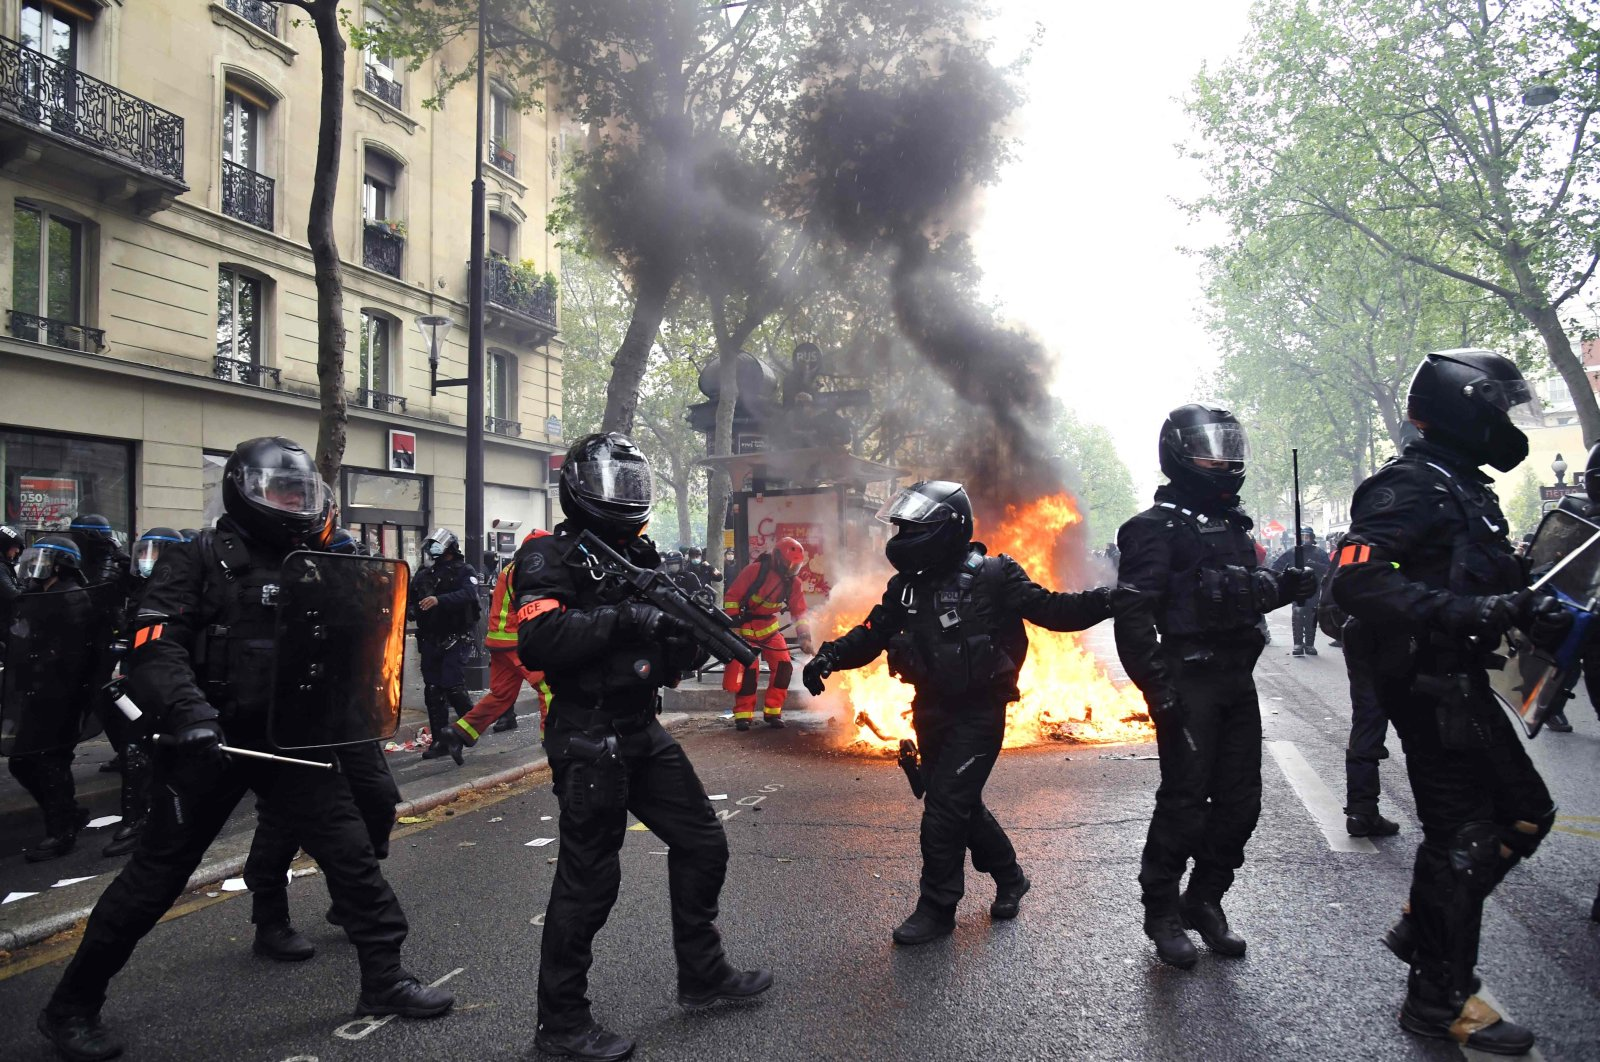 Police officers of the brigade of repression of violent action (BRAV) walk near a fire burning in the street during the annual May Day (Labor Day) rally in Paris, France, May 1, 2021. (AFP Photo)